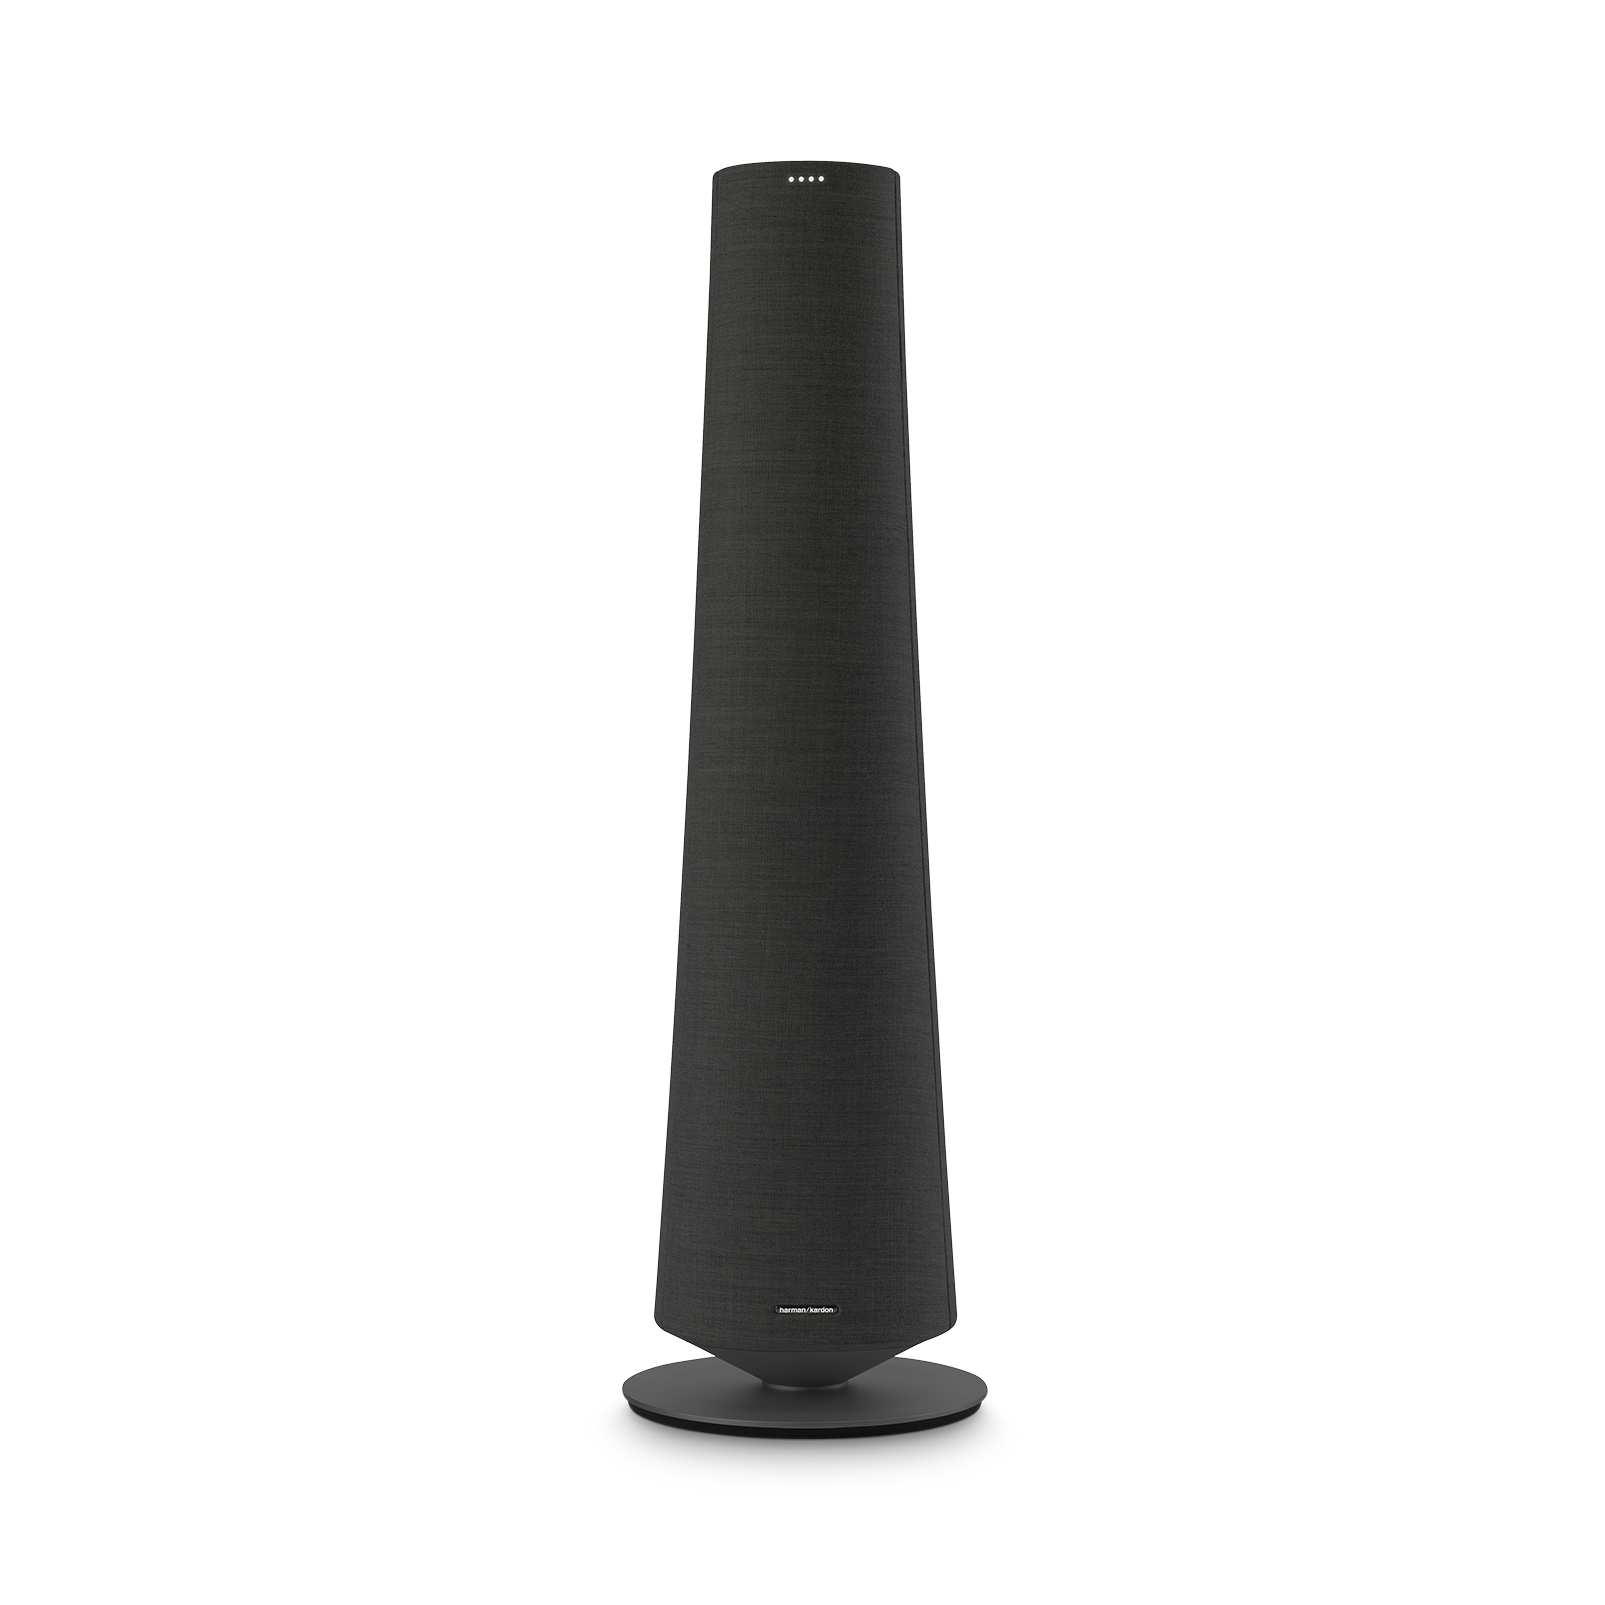 Harman Kardon Citation Tower - Black - Smart Premium Floorstanding Speaker that delivers an impactful performance - Front